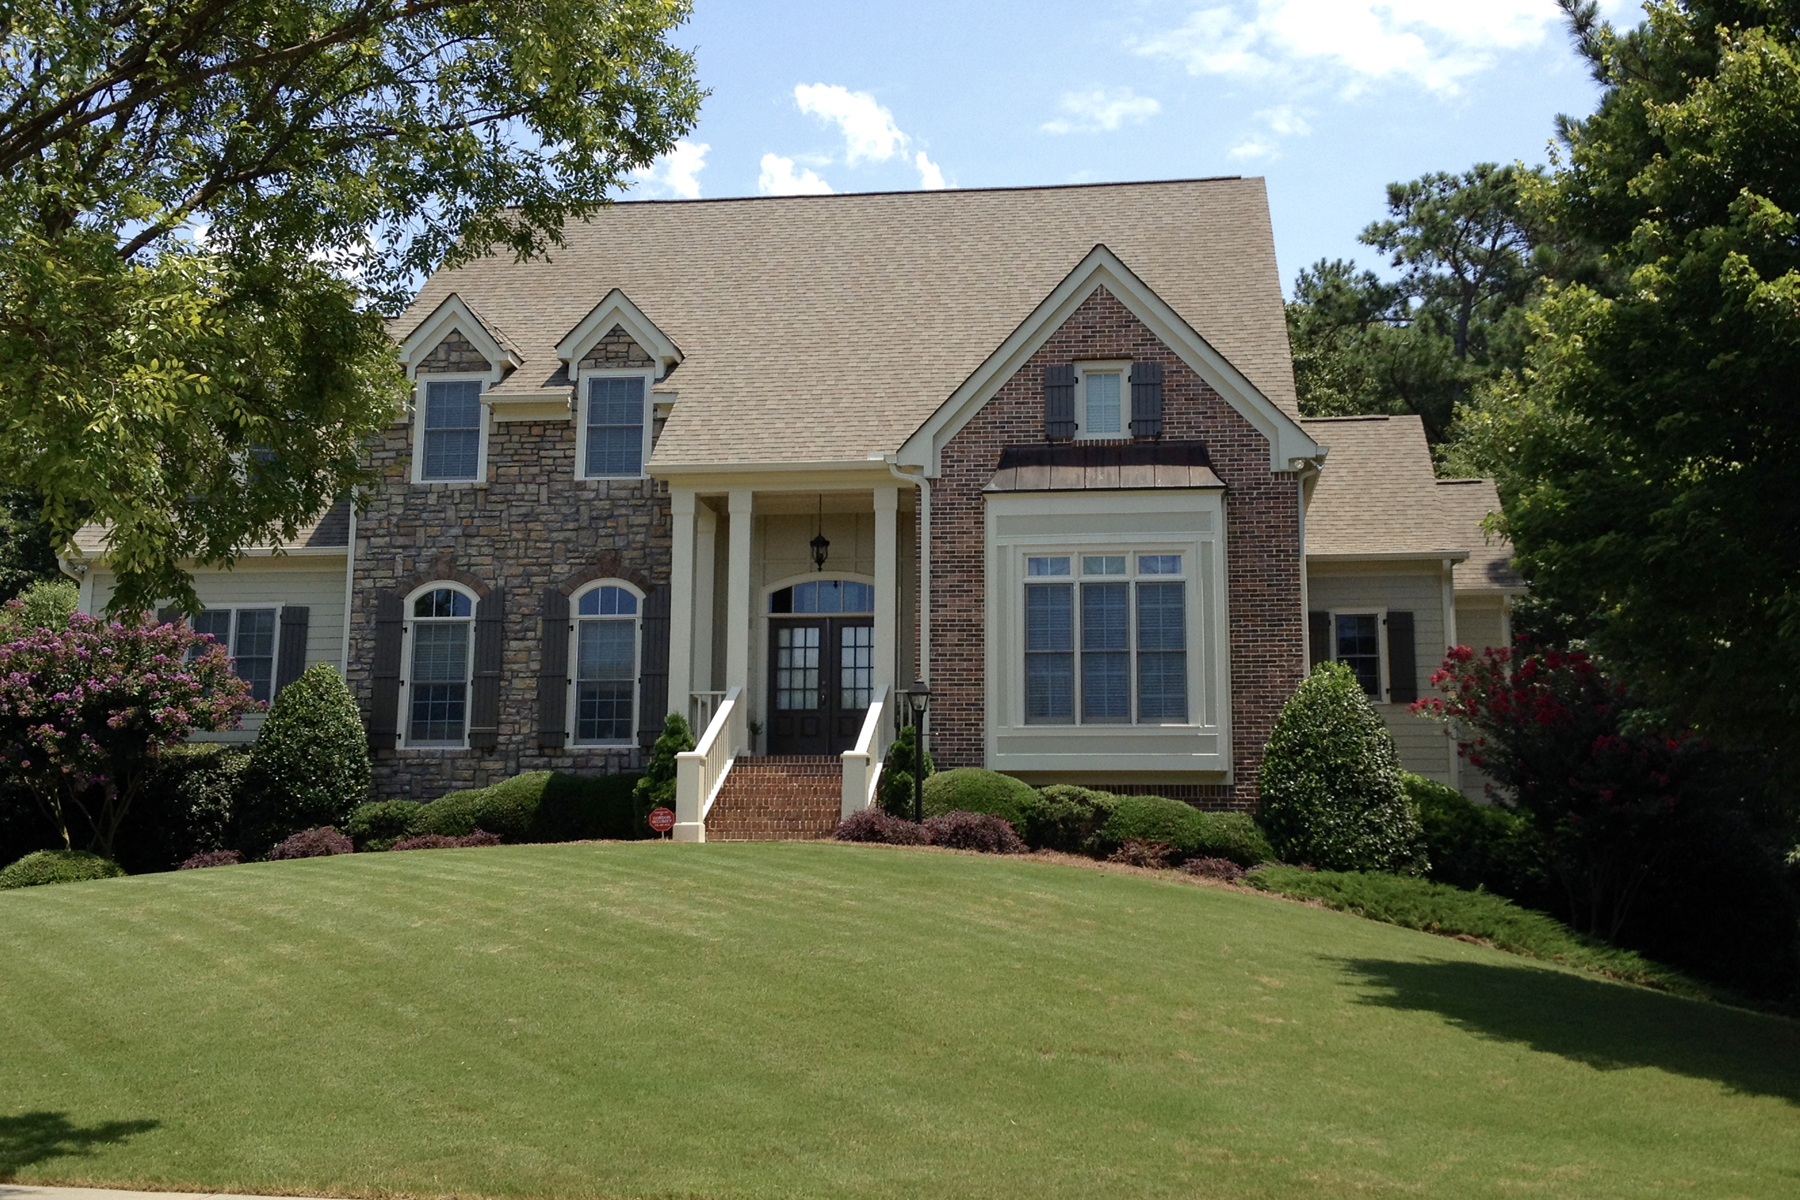 Maison unifamiliale pour l Vente à Must See! Incredible Highgrove Home With Master And Guest Suite On Main 400 Highgrove Drive Fayetteville, Georgia, 30215 États-Unis